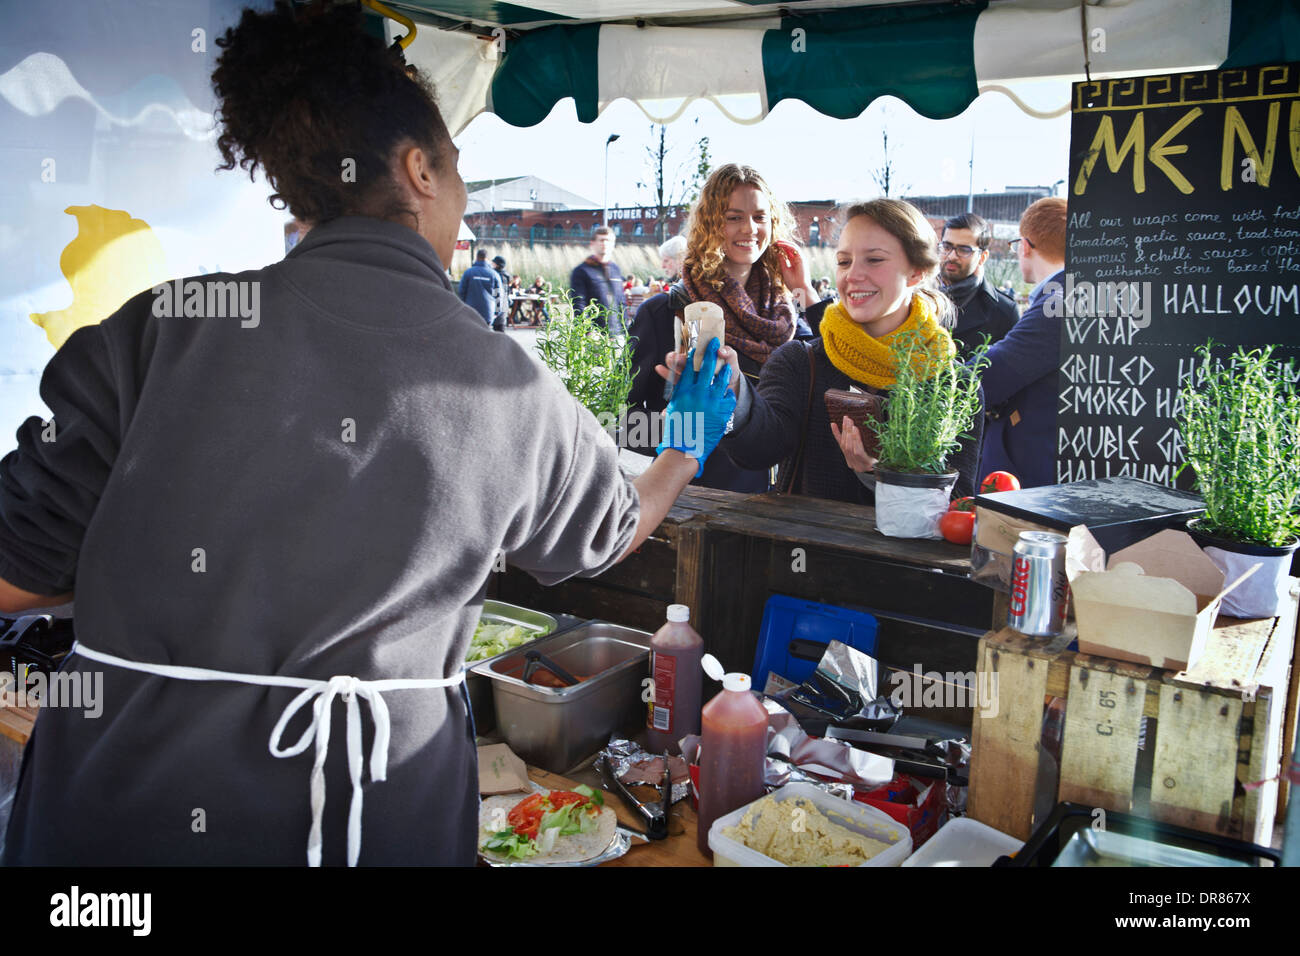 London market food stall at Canary Wharf. Vendor preparing & selling Greek food Halloumi wraps to queuing customers. Street food London. - Stock Image